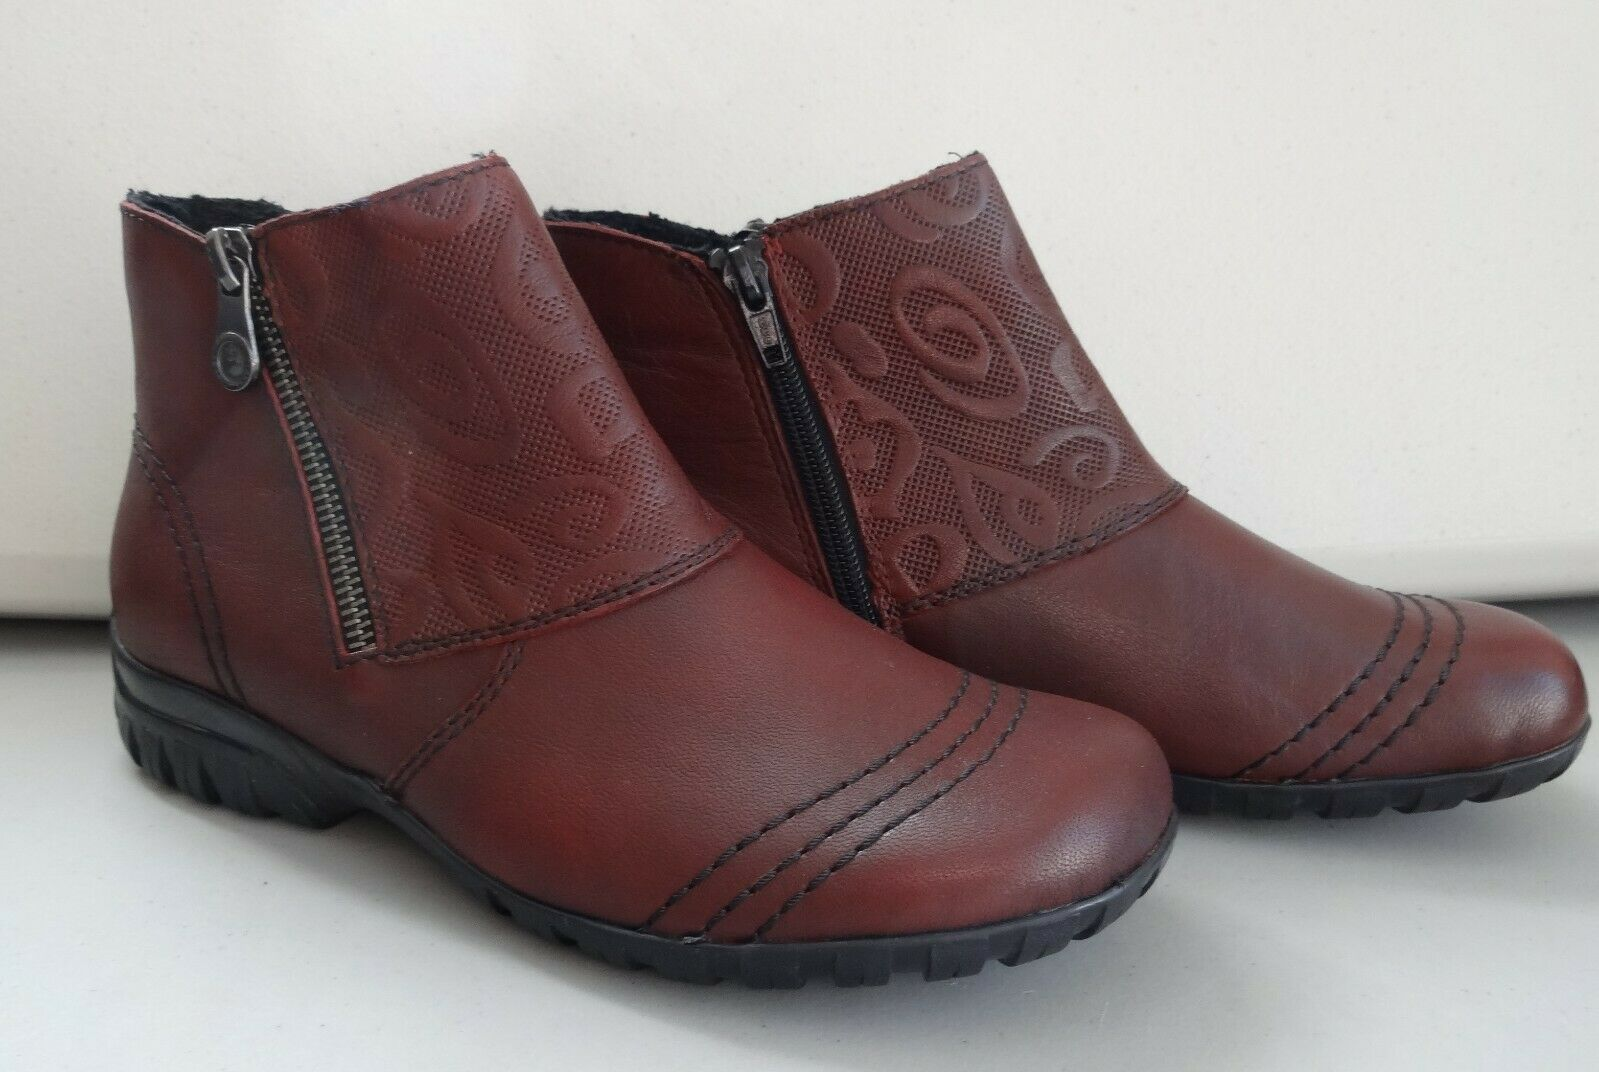 Rieker Embossed Panel Side Zip Leather Ankle Boot Size 4 (37) Burgundy